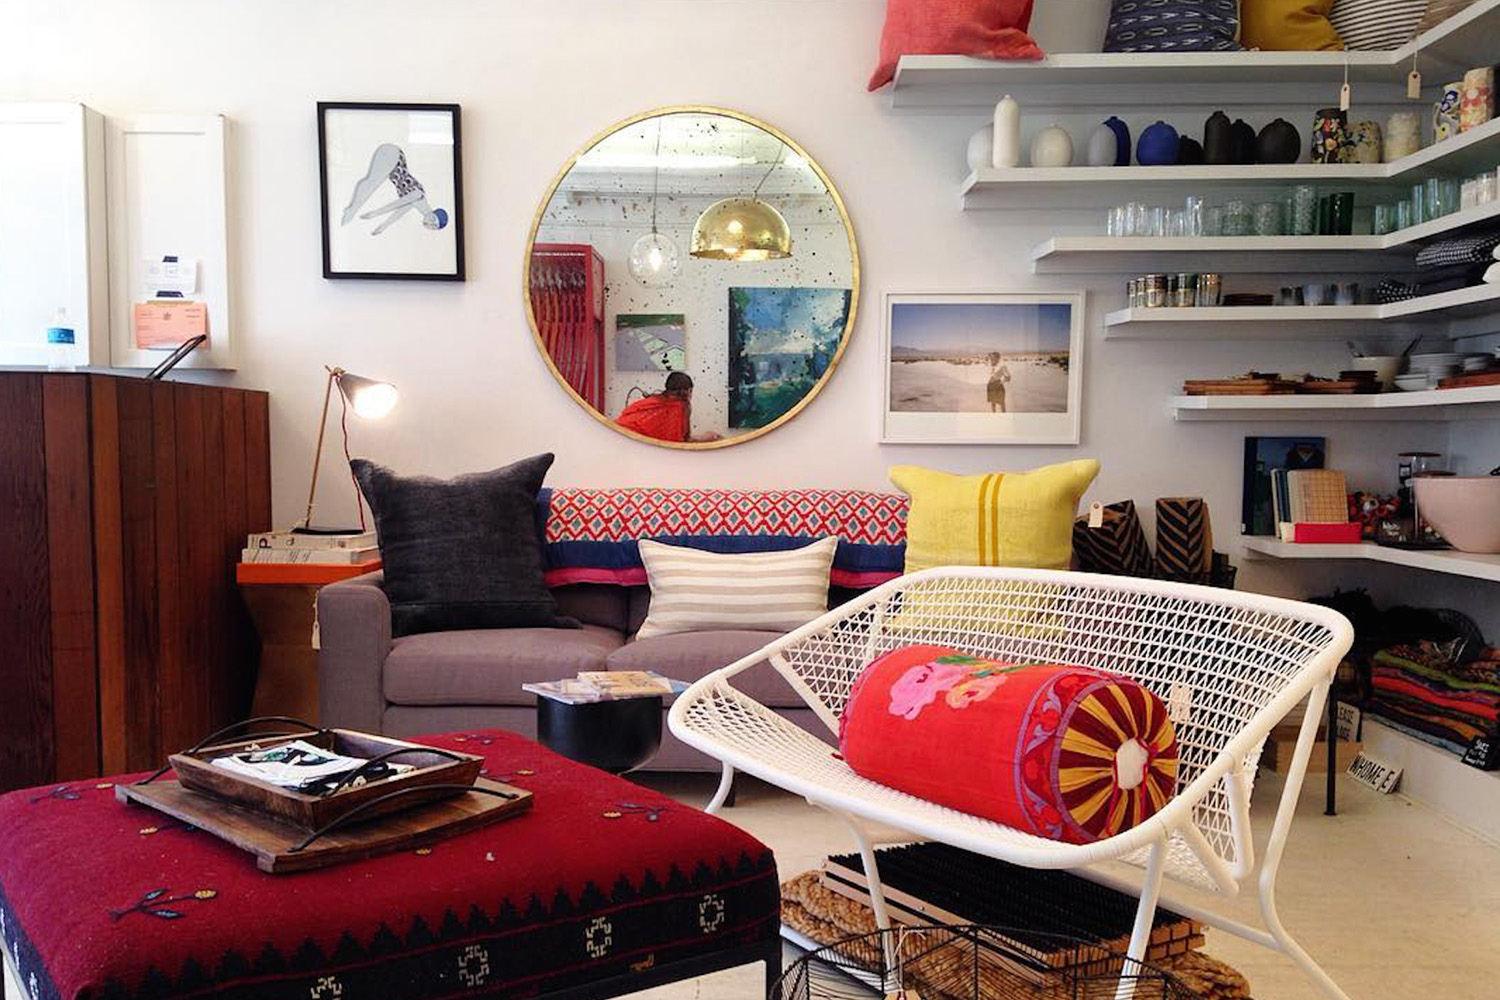 11 cool online stores for home decor and high design curbed garden ridge home decor locations cool home decorations